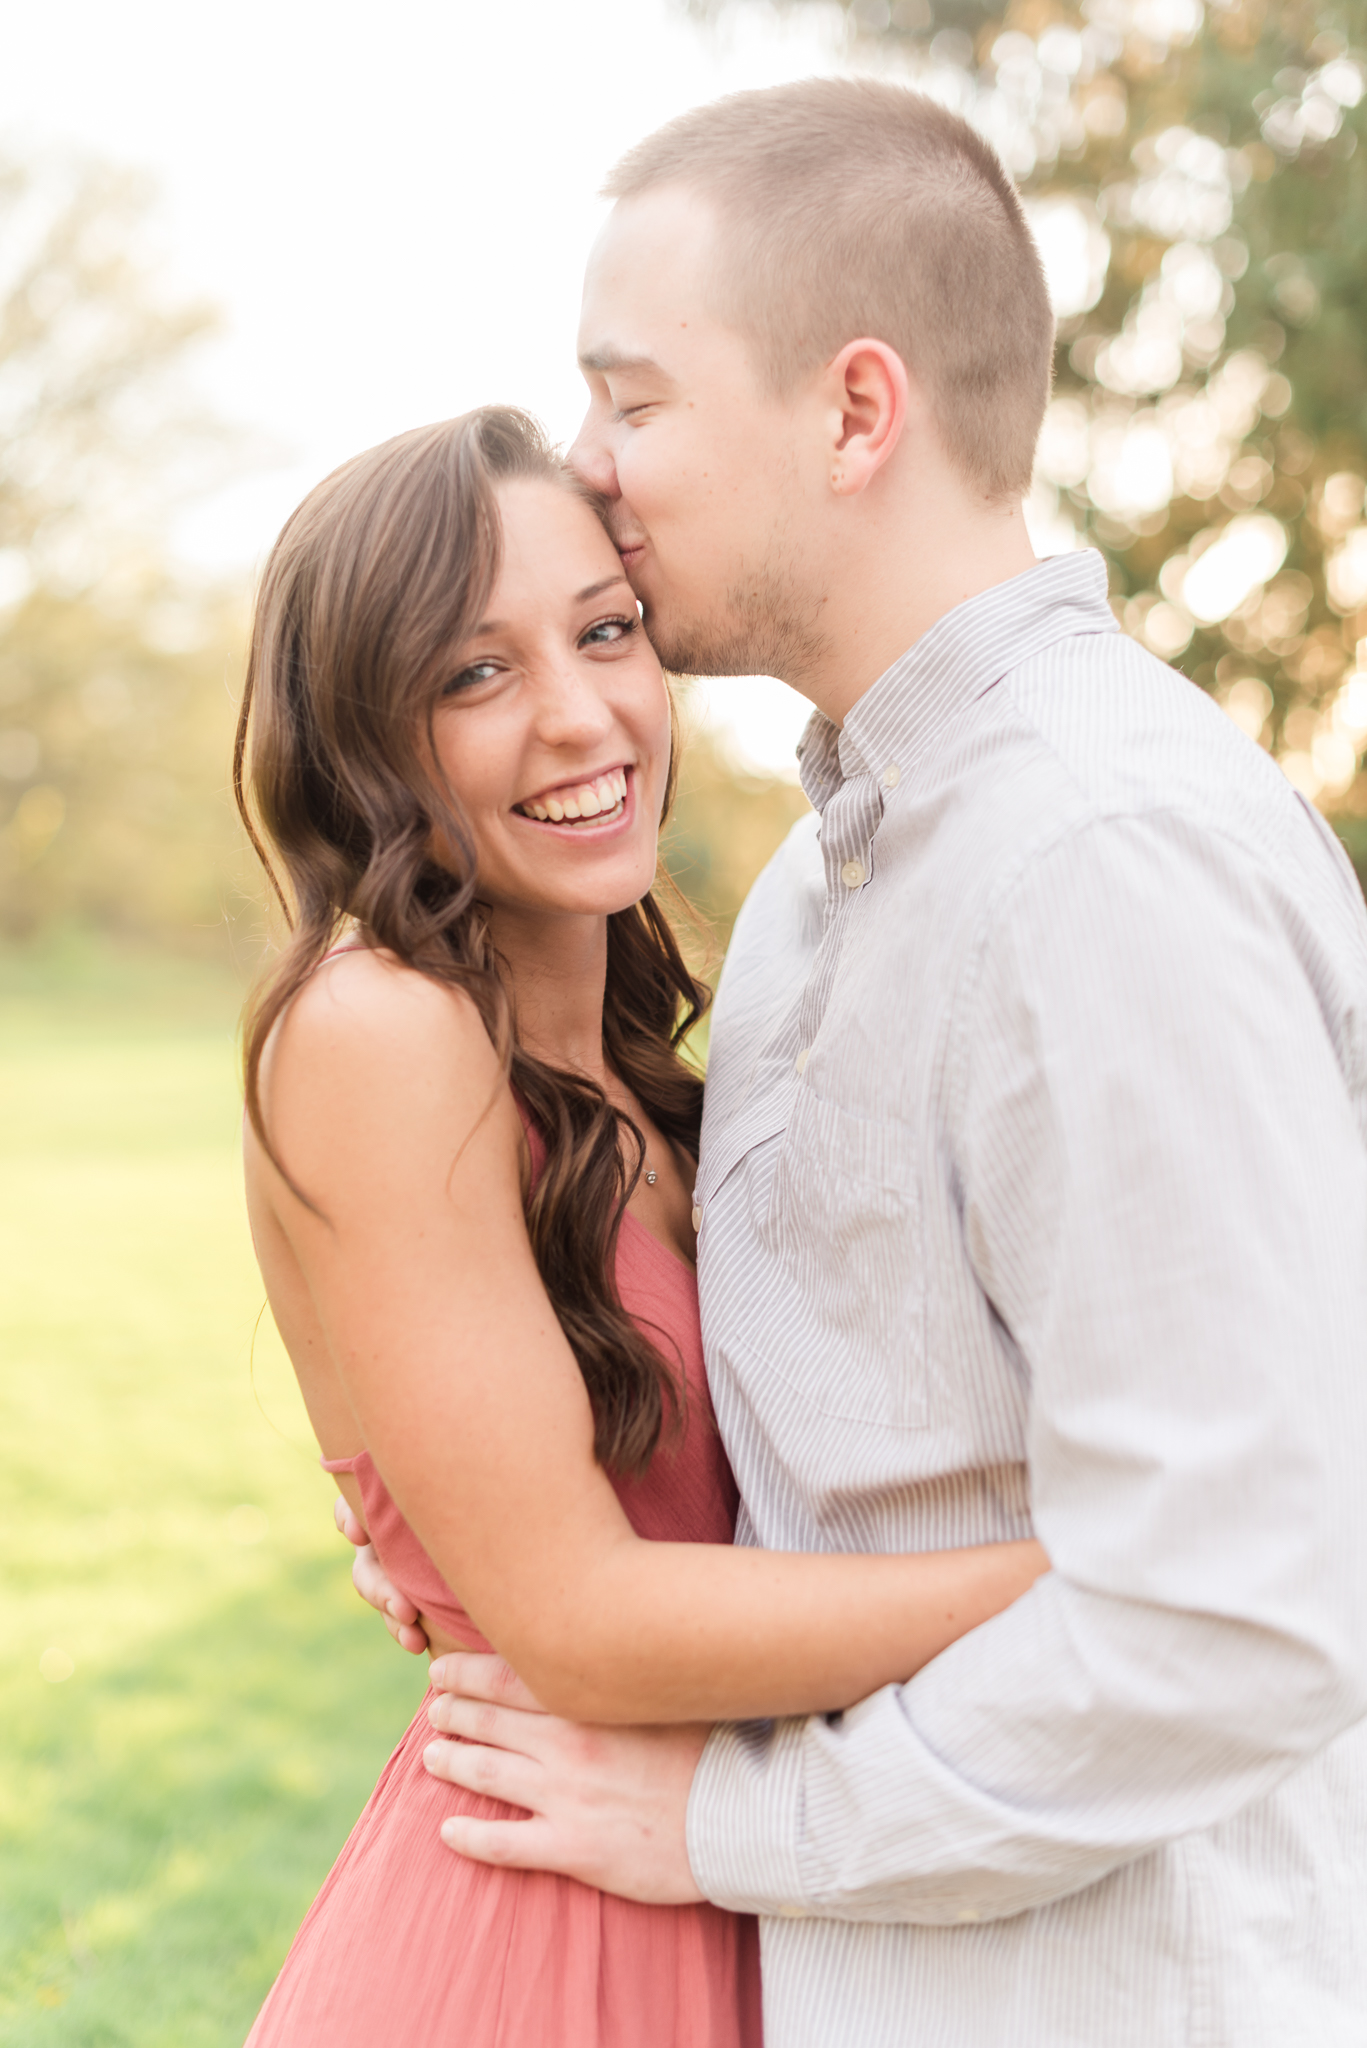 Holliday Park Engagement Session Indianapolis Wedding Photographer-19.jpg